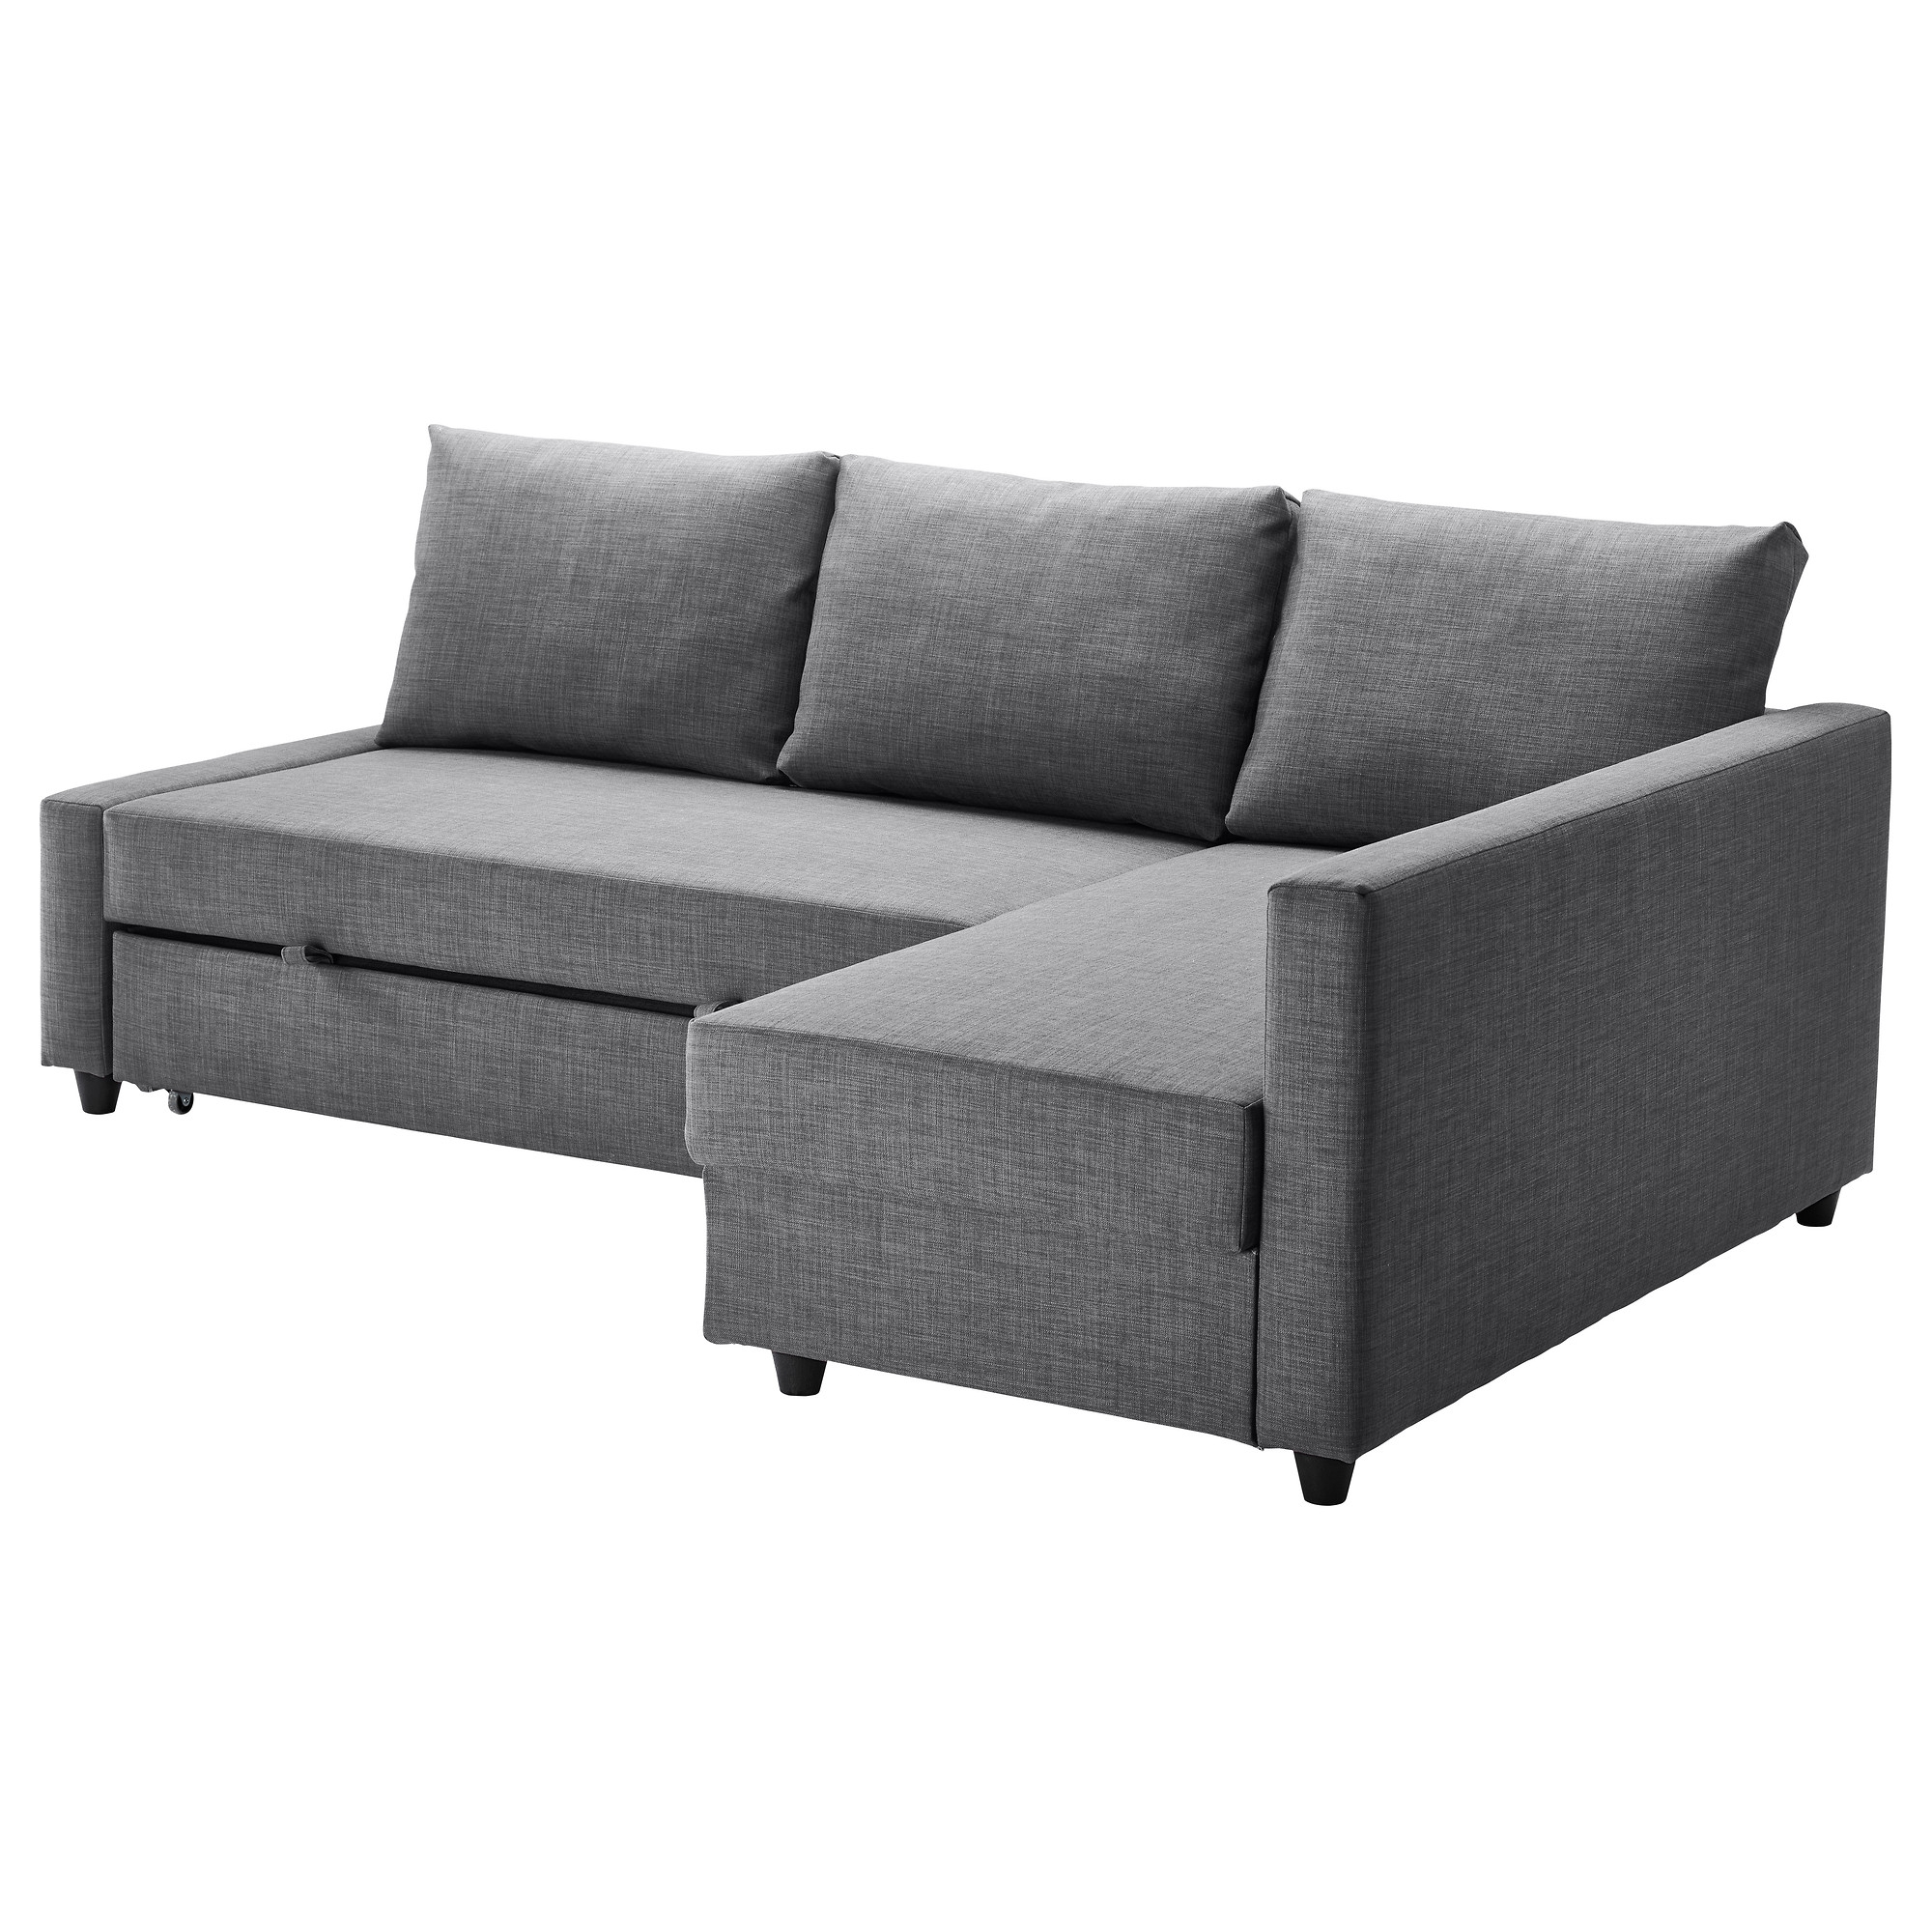 Featured Image of Corner Couch Bed